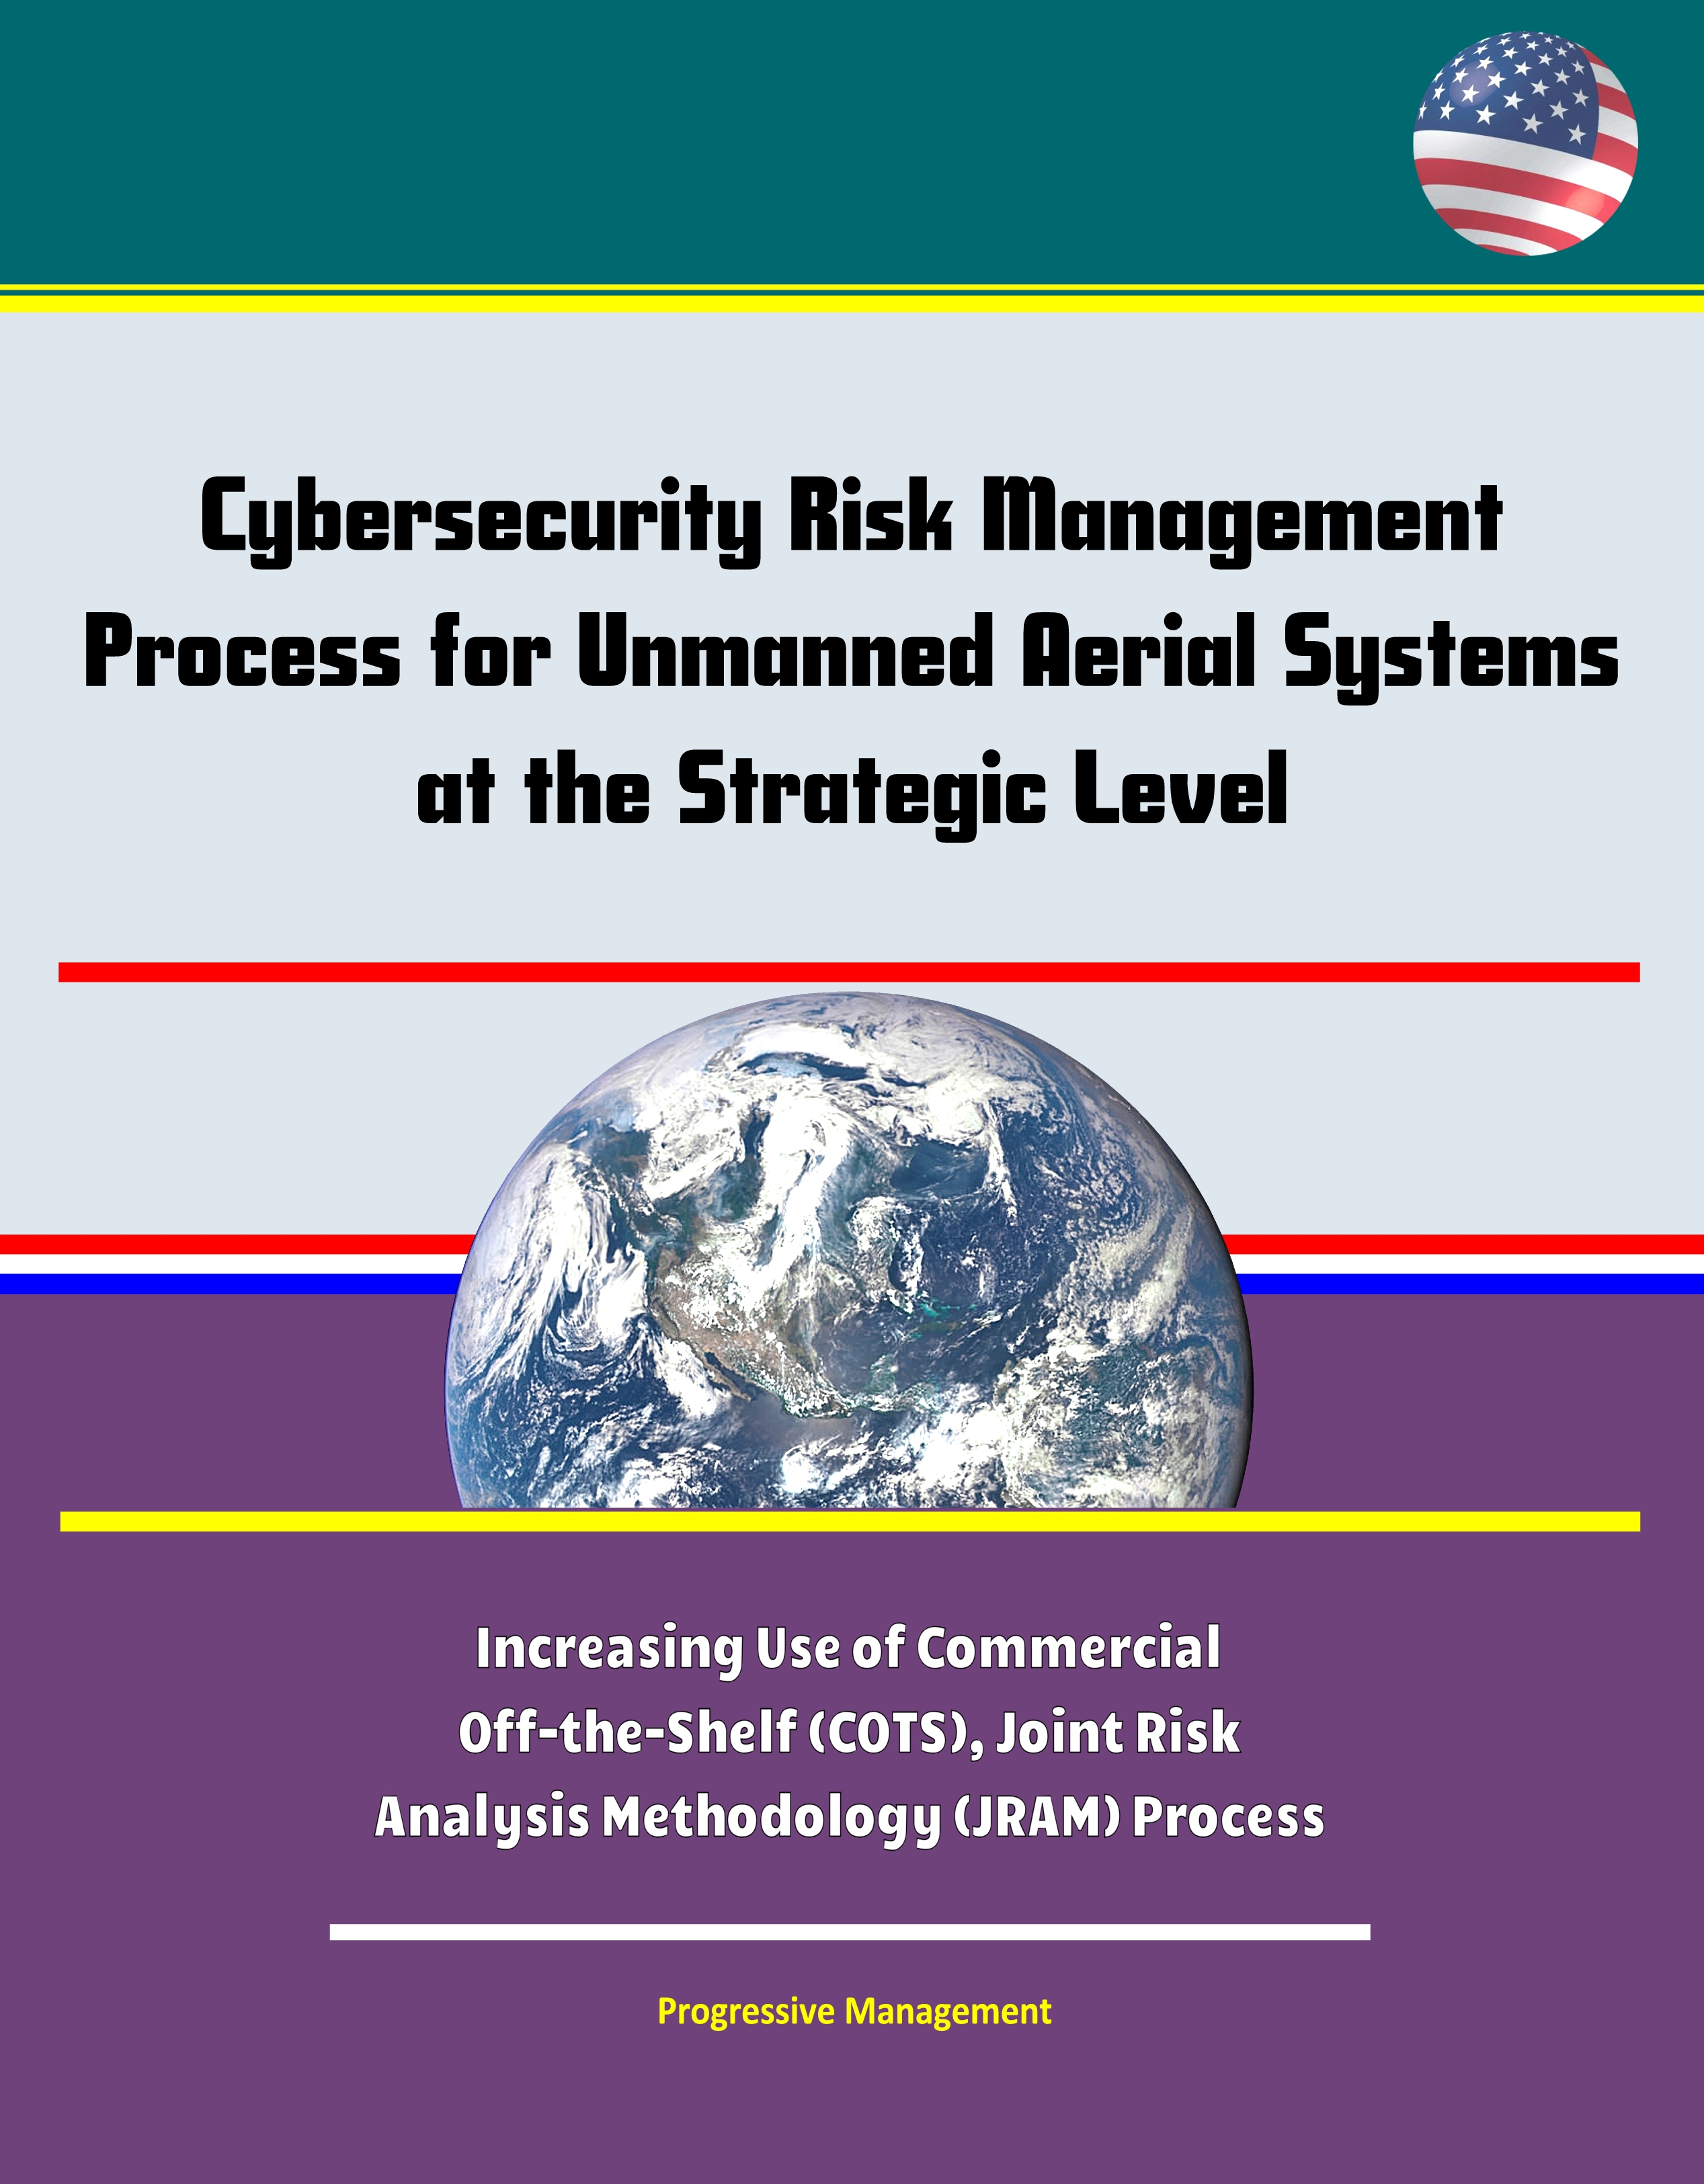 Cybersecurity Risk Management Process for Unmanned Aerial Systems (UAS) at  the Strategic Level - Increasing Use of Commercial Off-the-Shelf (COTS),